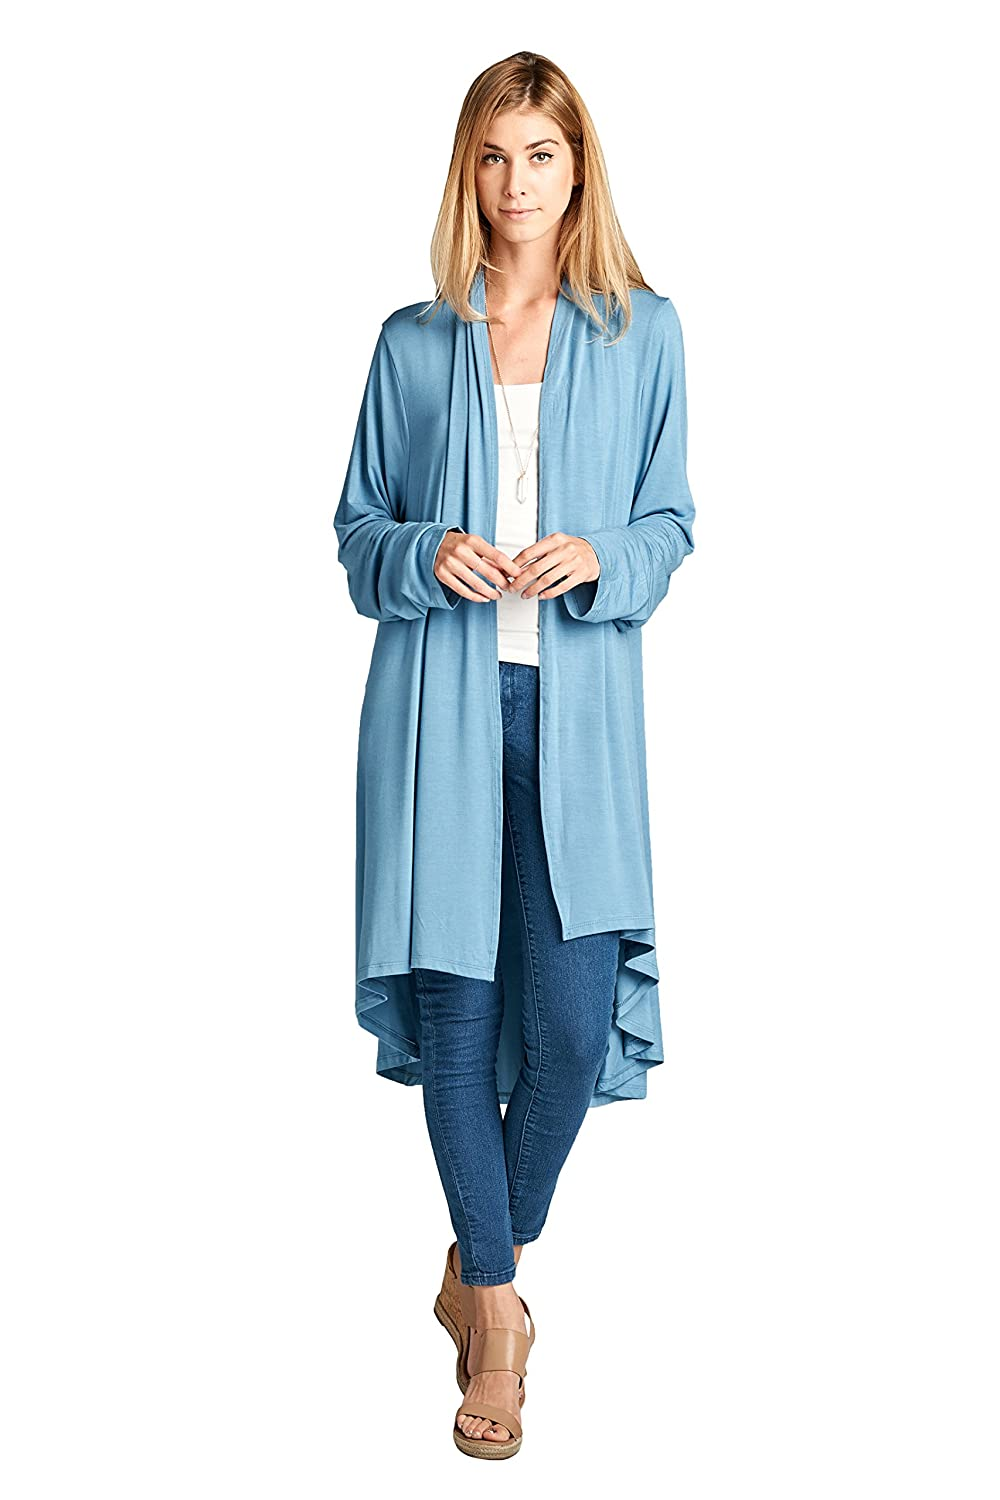 Dust bluee ReneeC. Long Open Front Soft Bamboo Cardigan Sweater for Women (S  5XL)  Made in USA